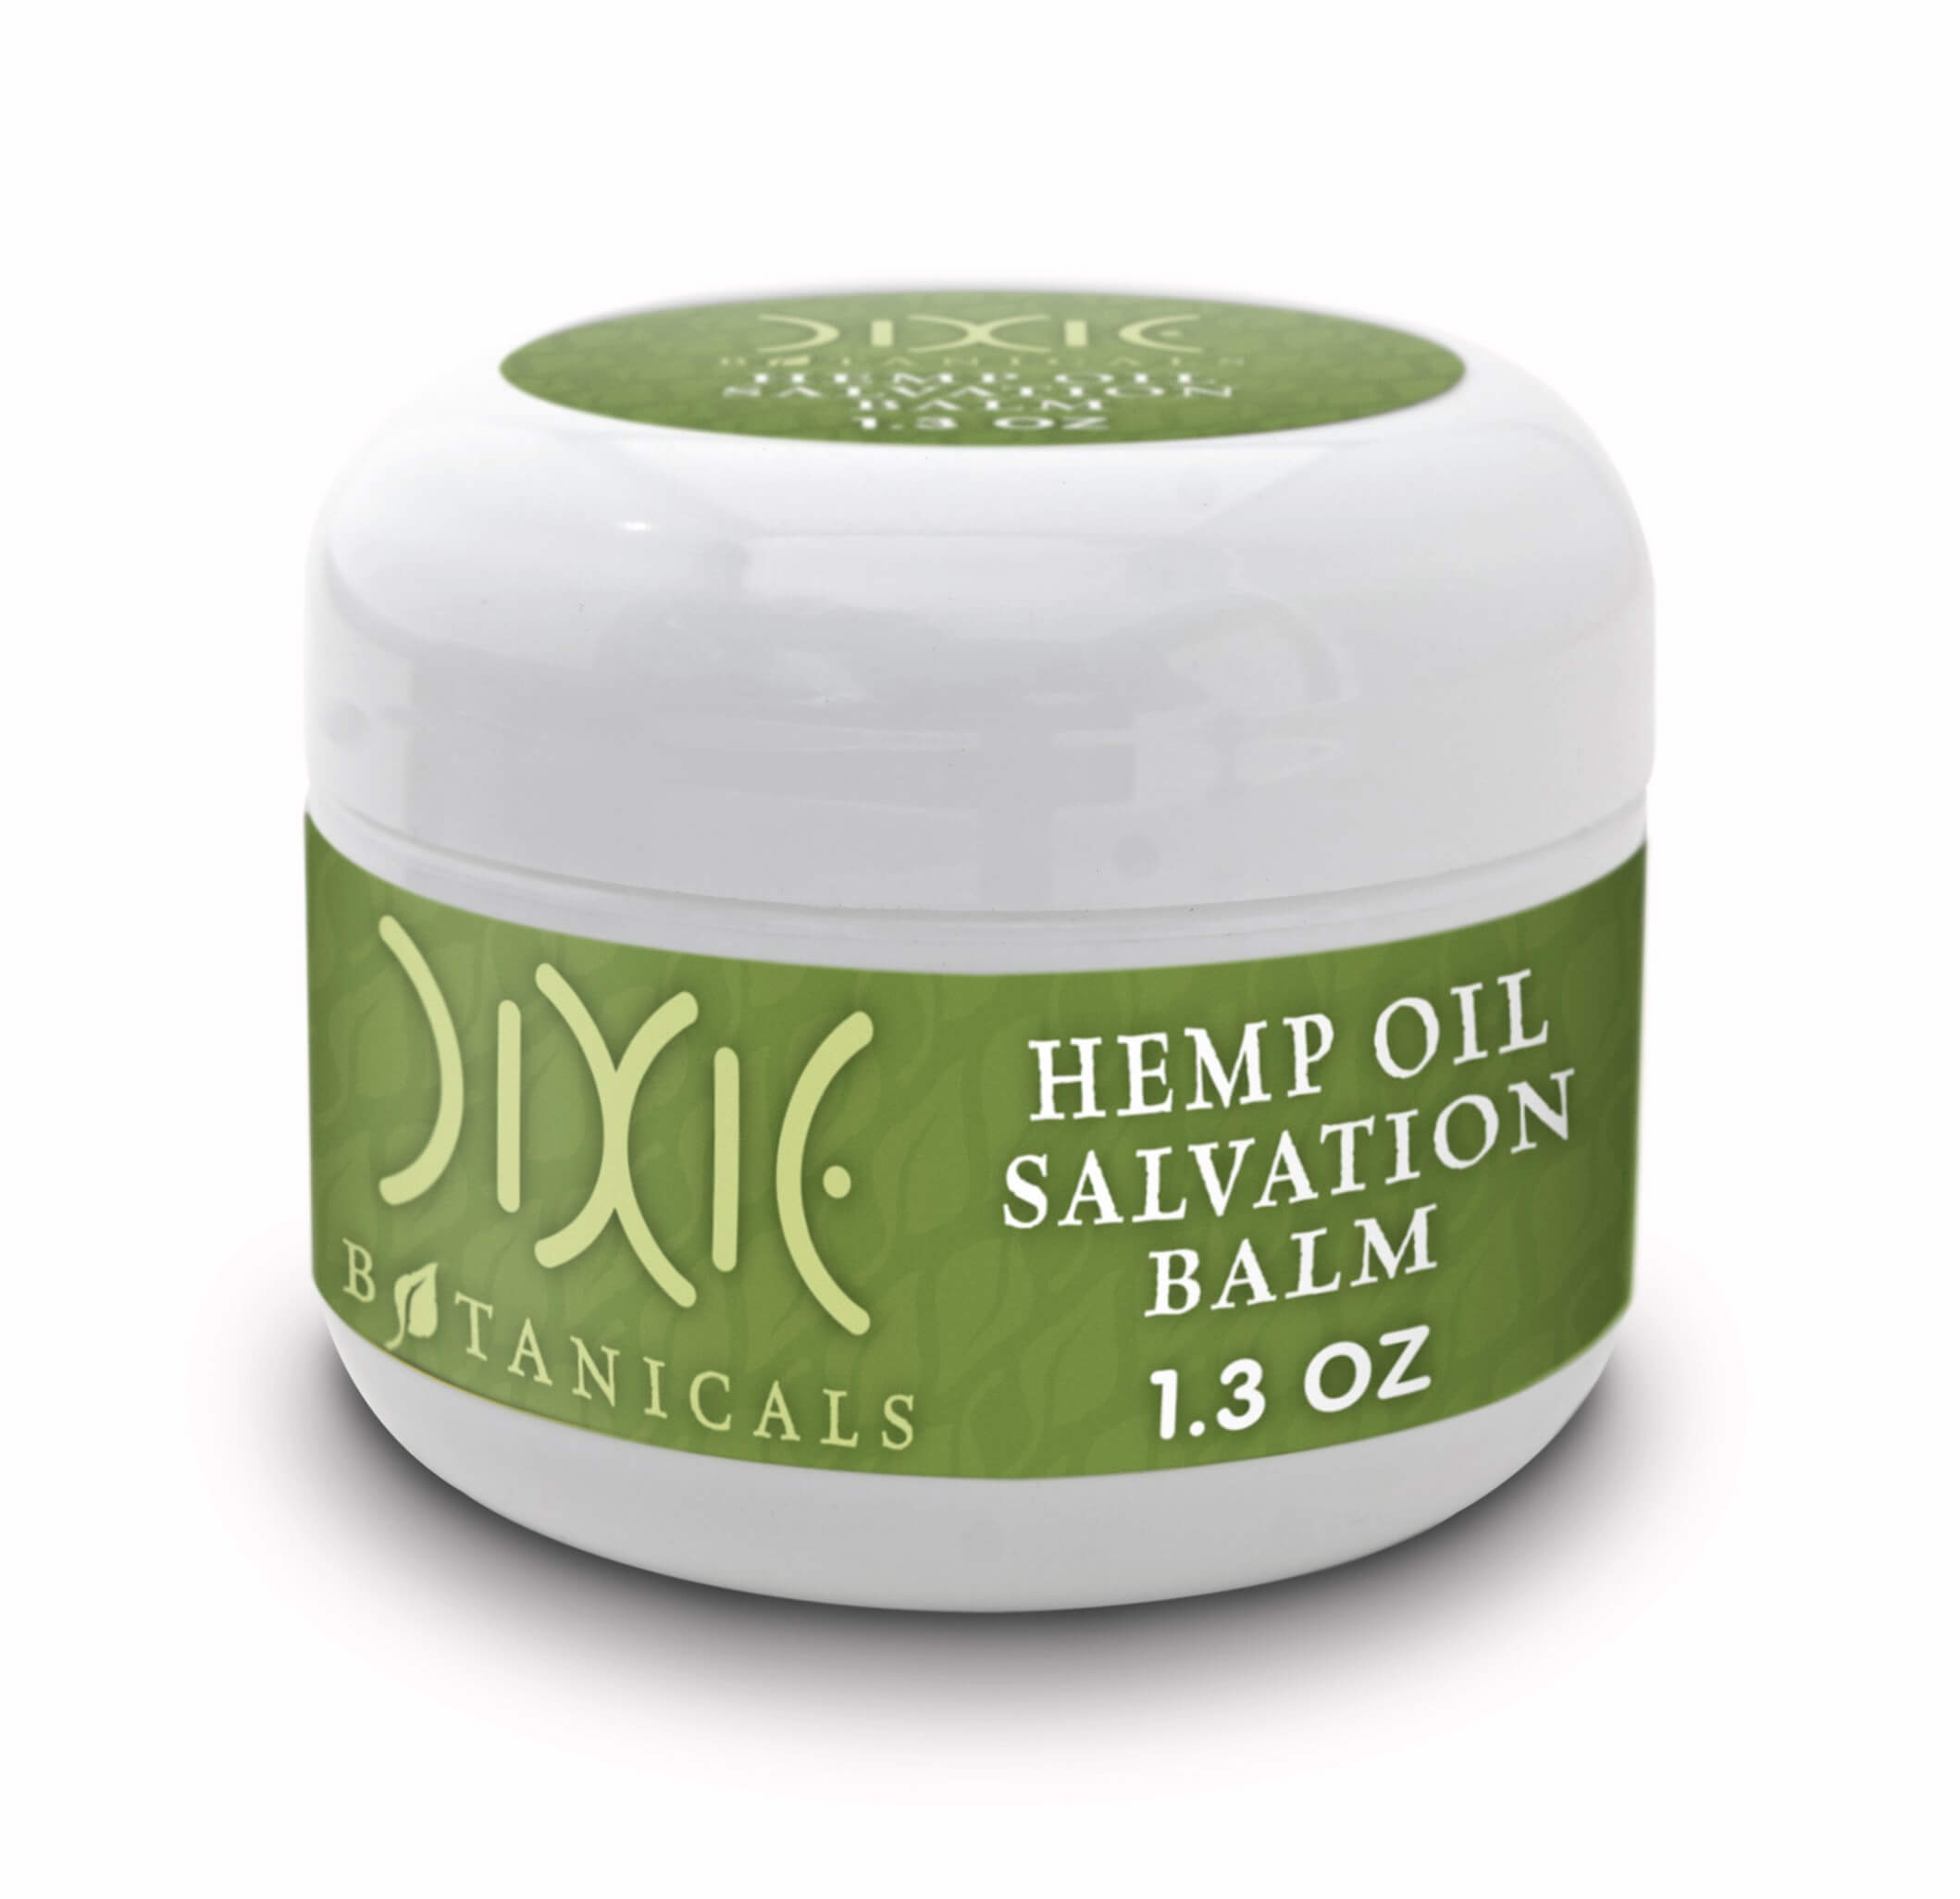 hemp oil salvation balm